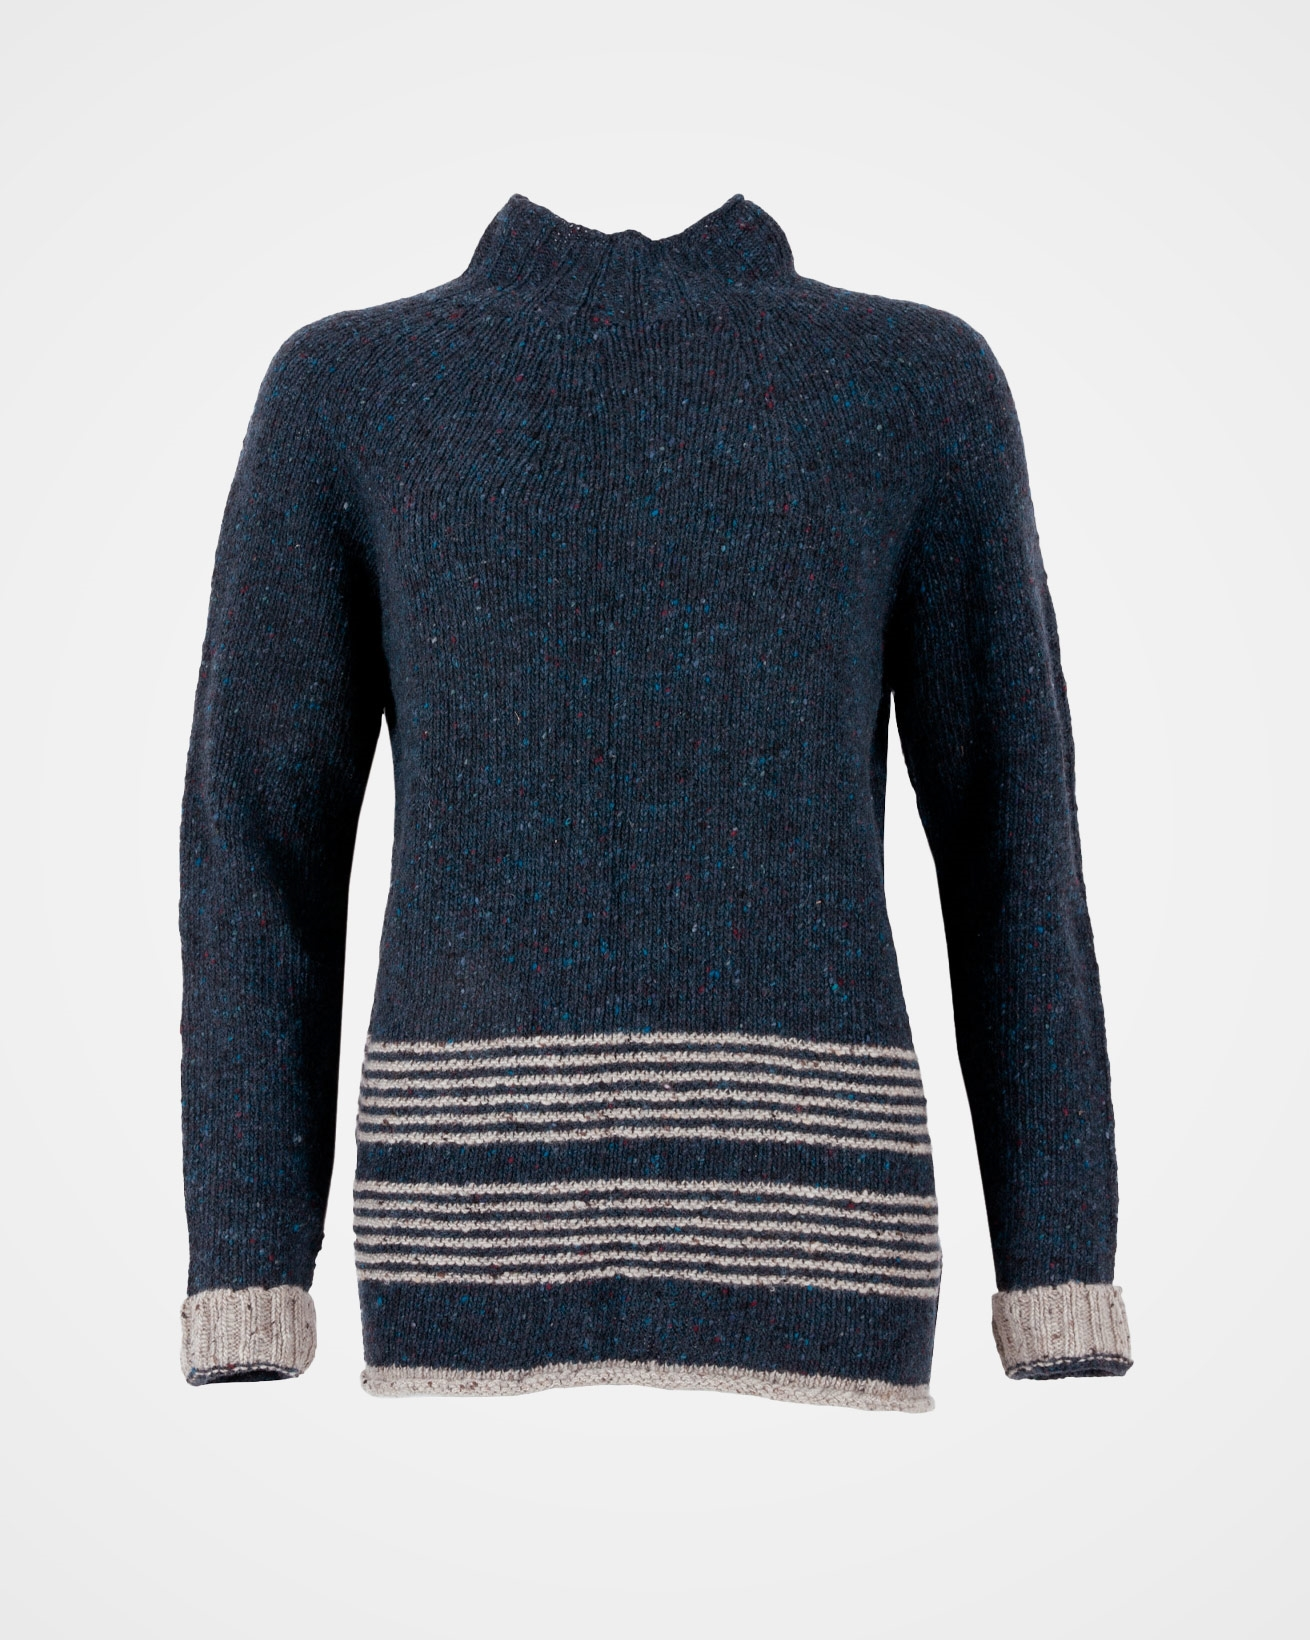 Flecked Funnel Neck - Size Small - Navy / Grey - 1600